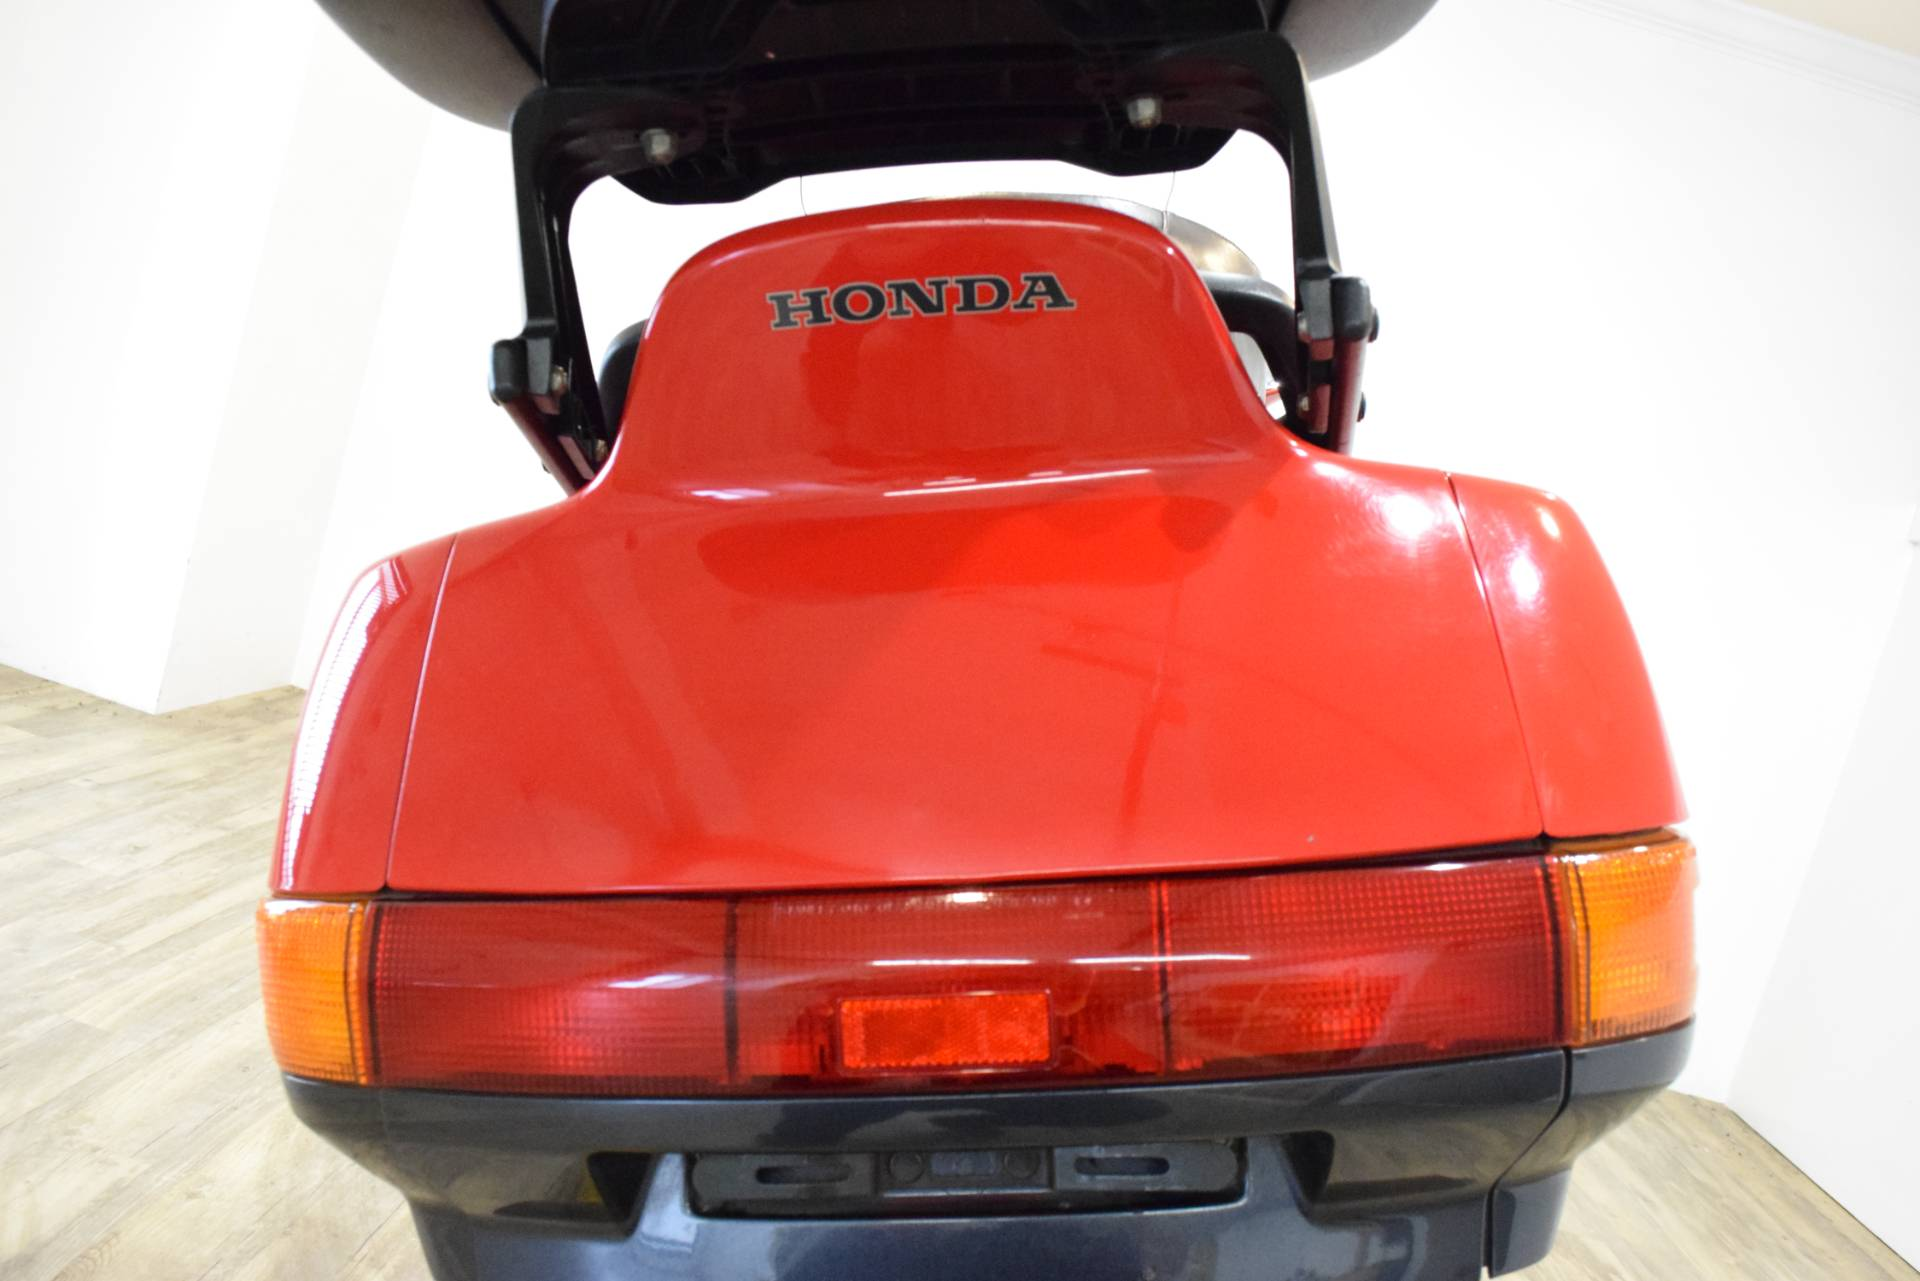 1996 Honda Pacific Coast 800 in Wauconda, Illinois